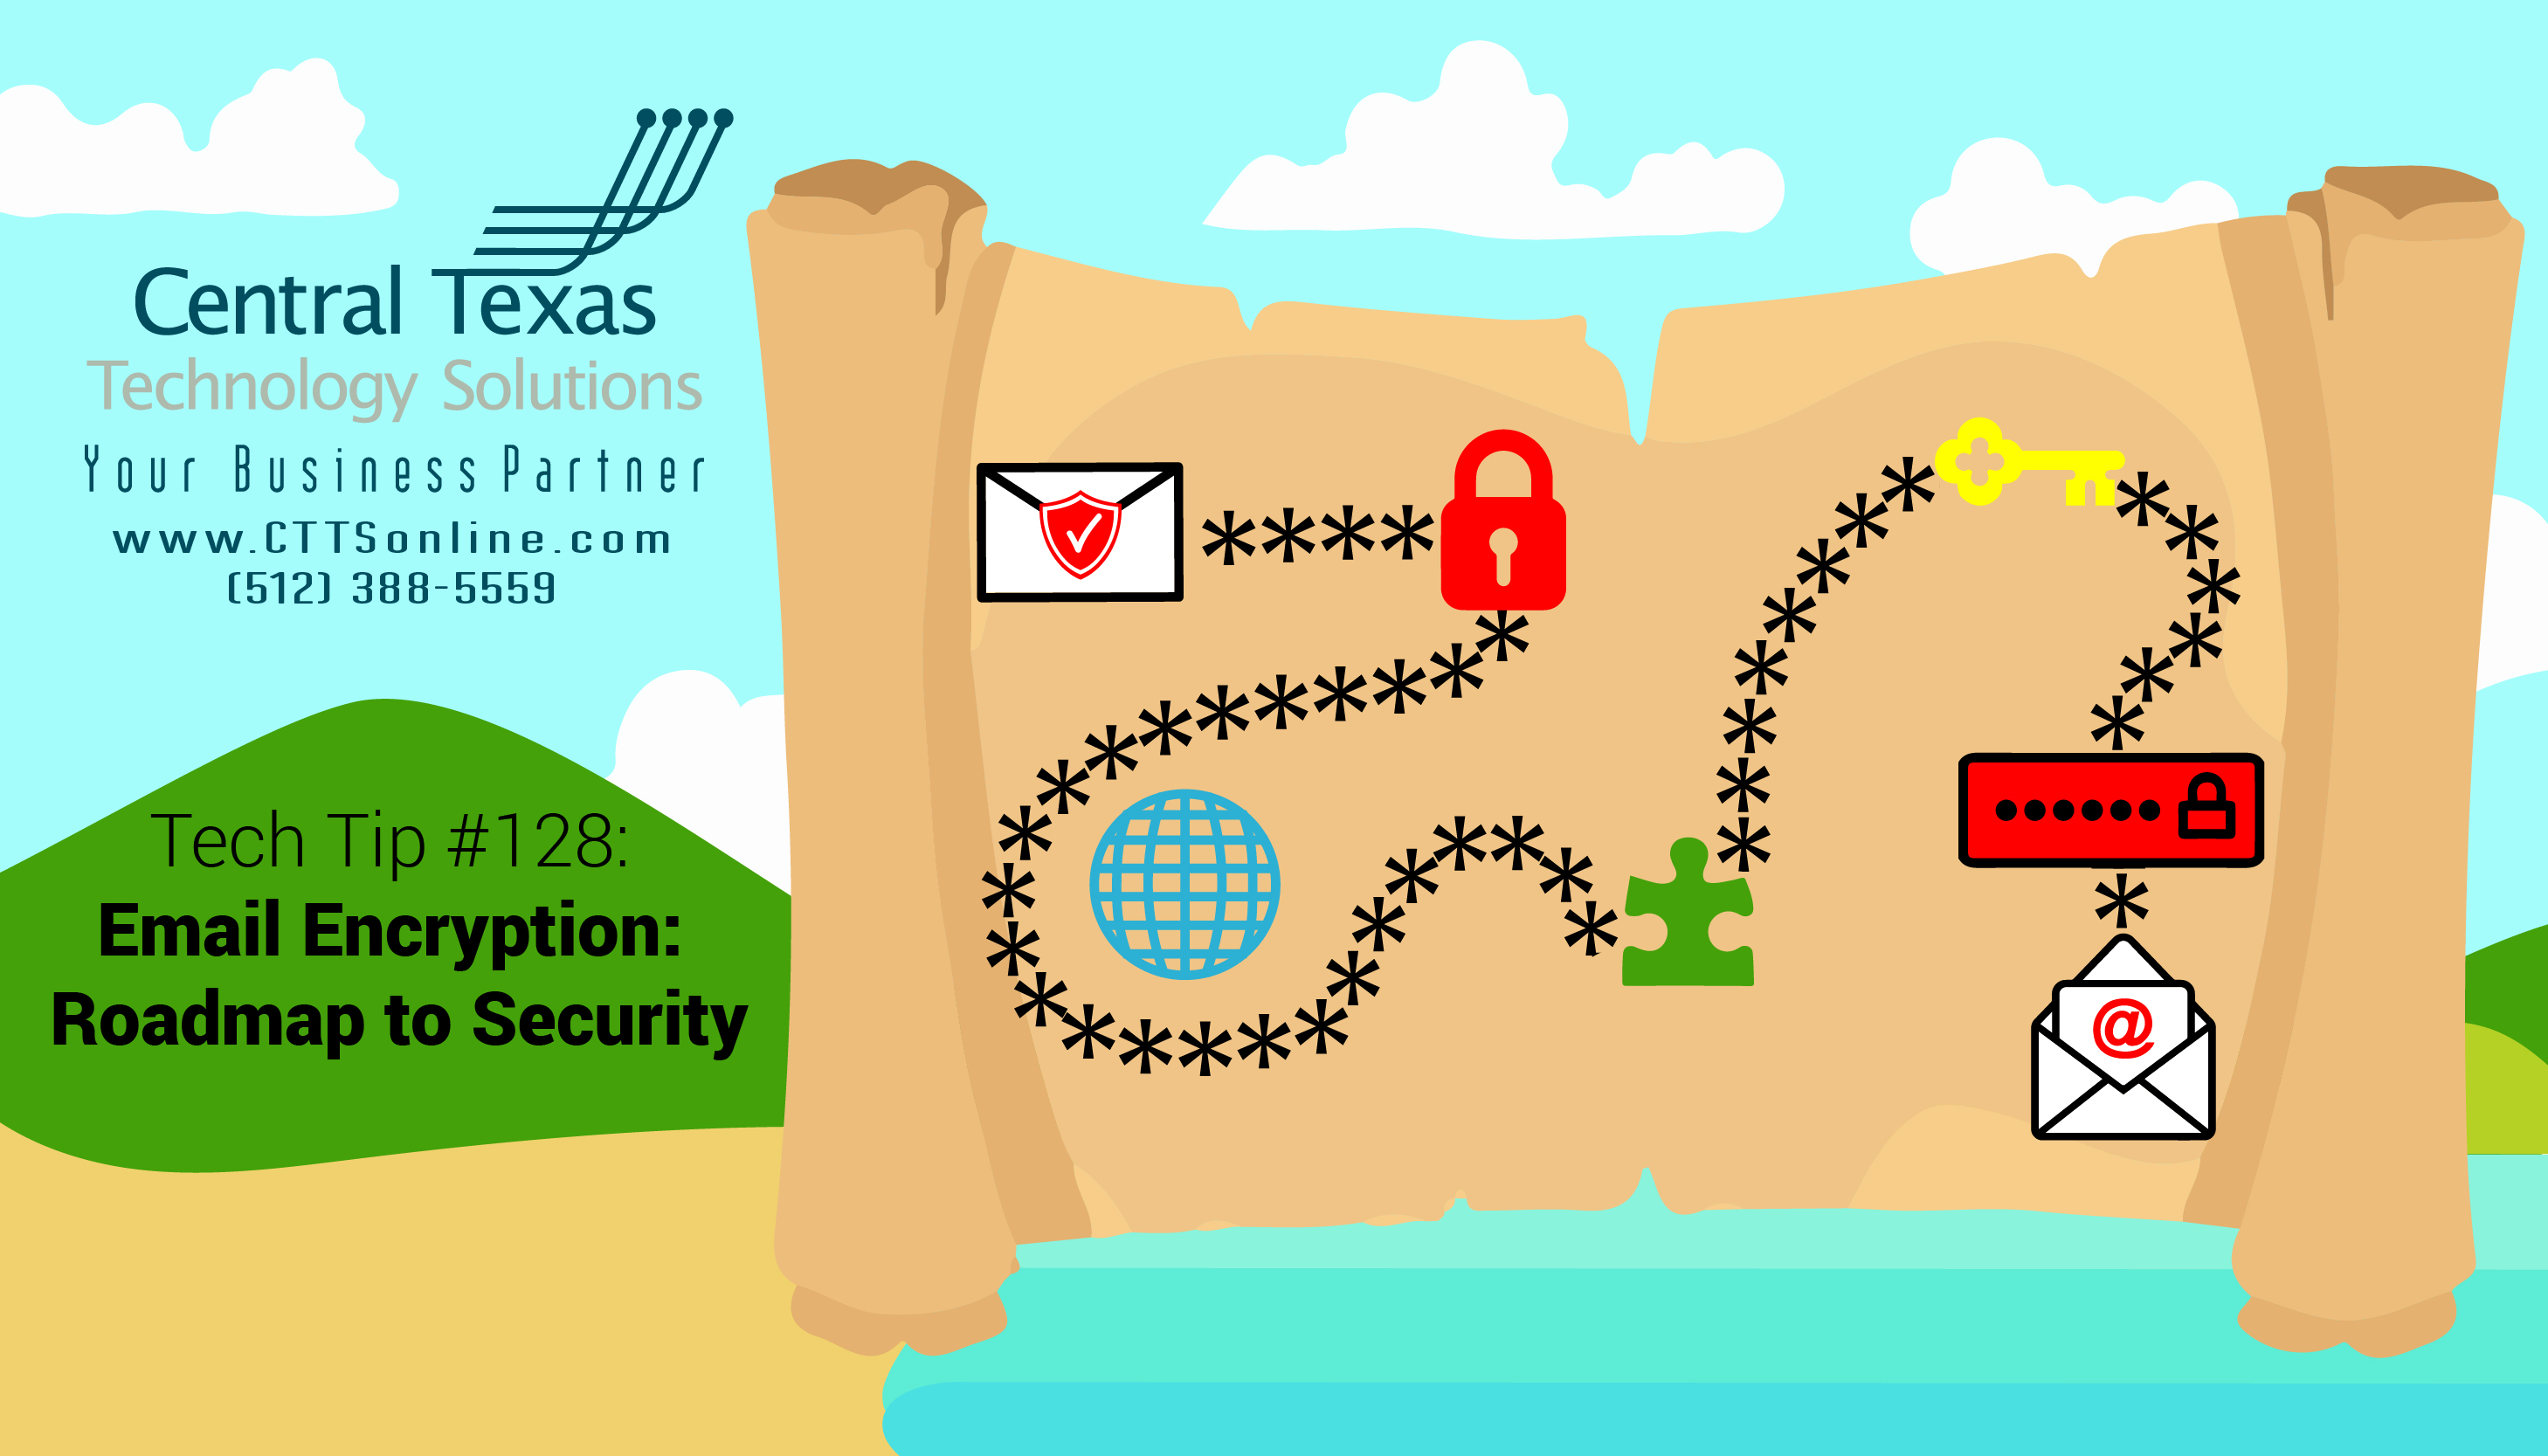 email encryption and security roadmap Georgetown TX